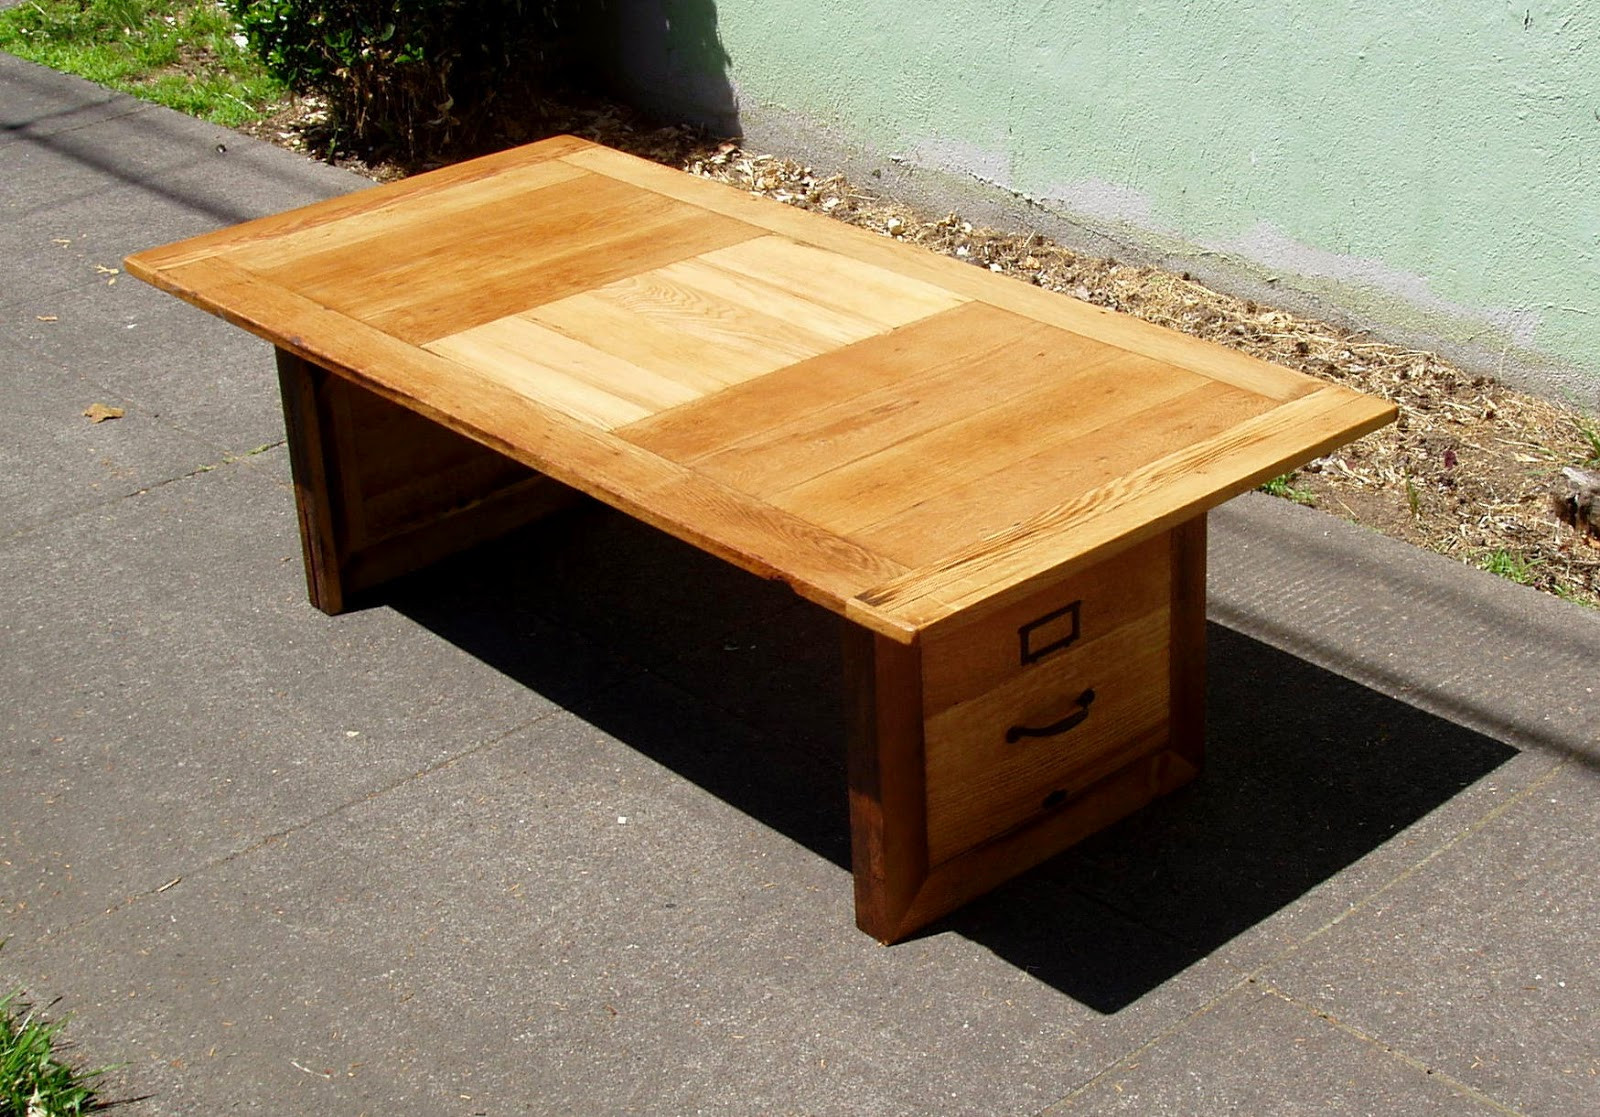 Best ideas about Coffee Table For Sale . Save or Pin pnw Spring Sale Reclaimed Wood Coffee Tables Now.